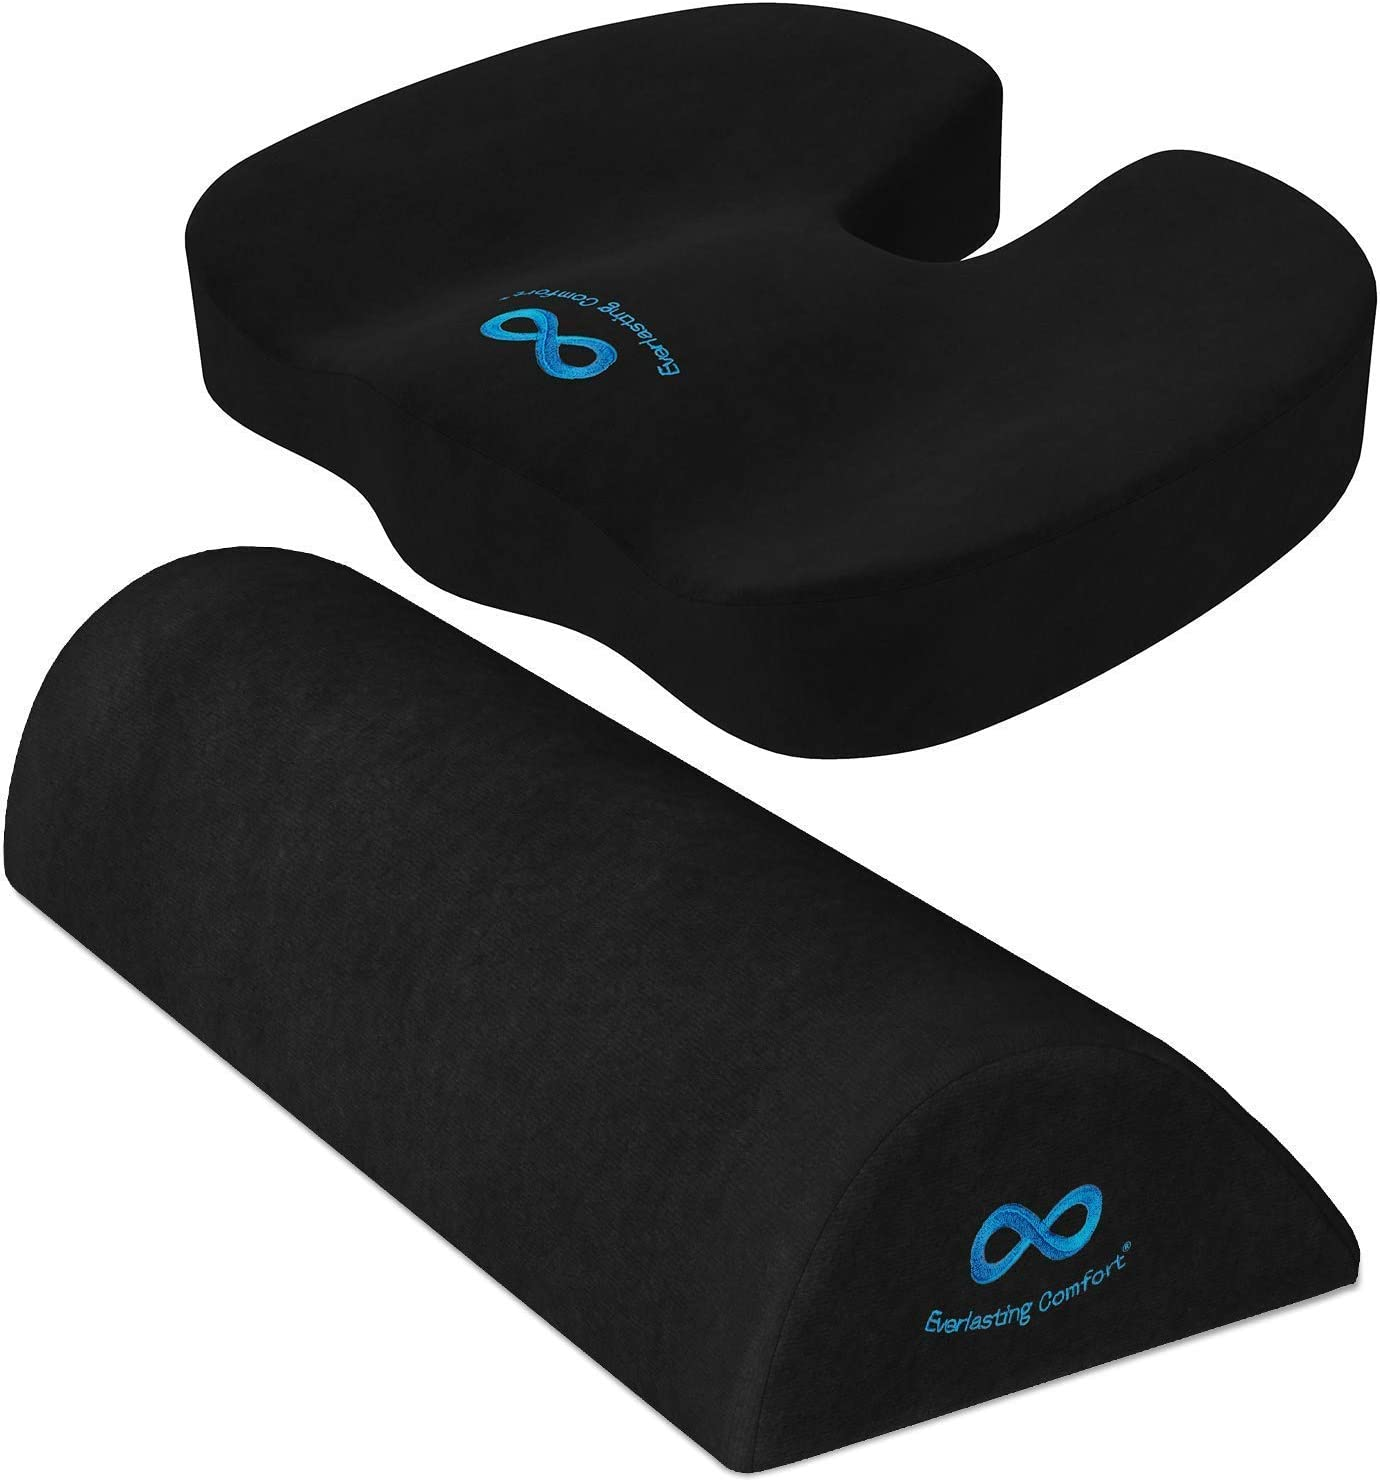 Everlasting Comfort Seat Cushion for Office Chair and Foot Rest Under Desk Bundle